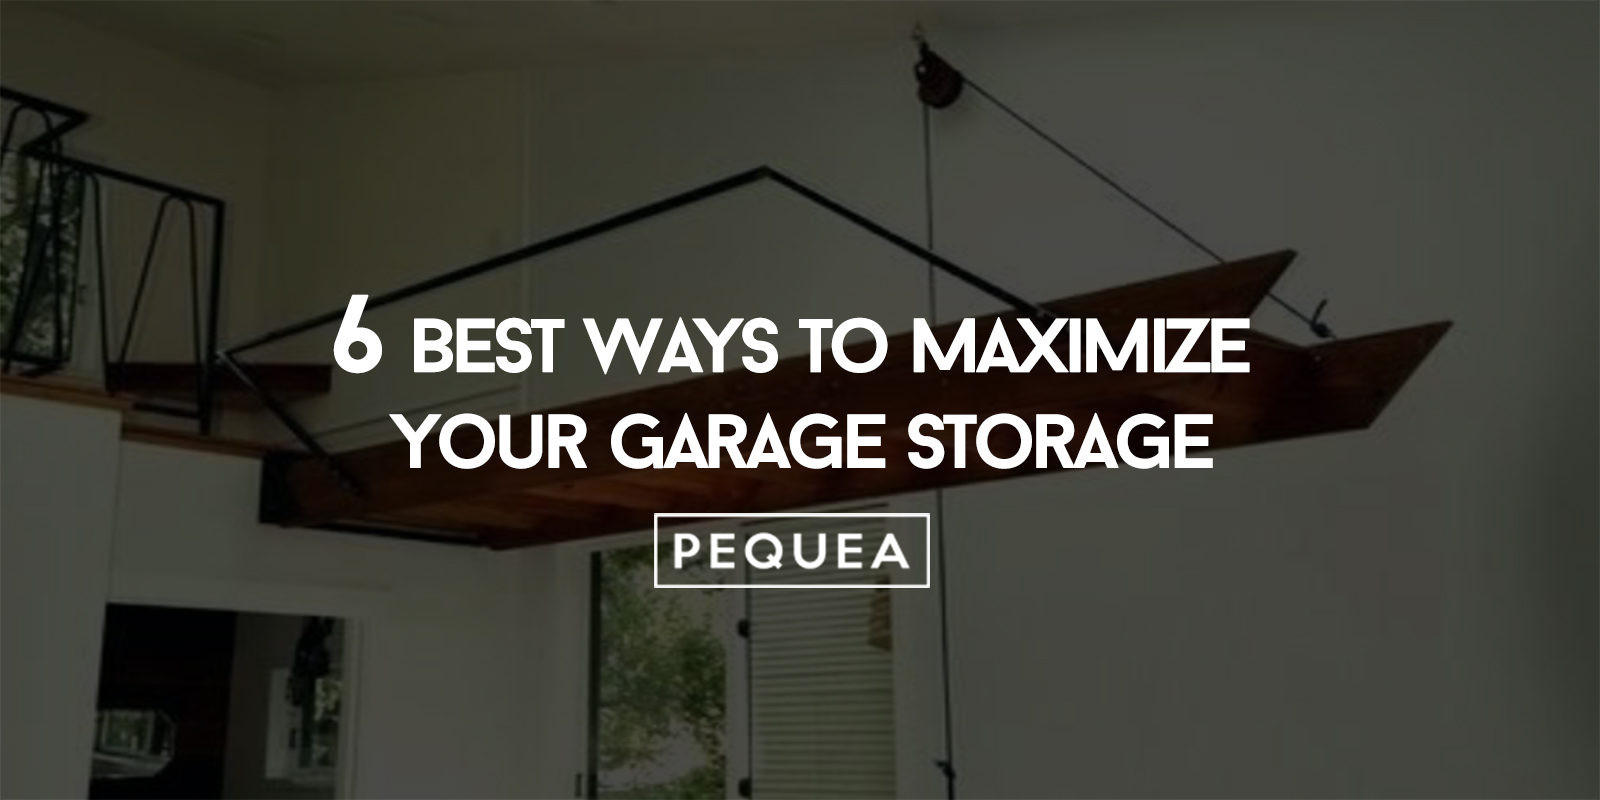 6 Best Ways to Maximize Your Garage Storage